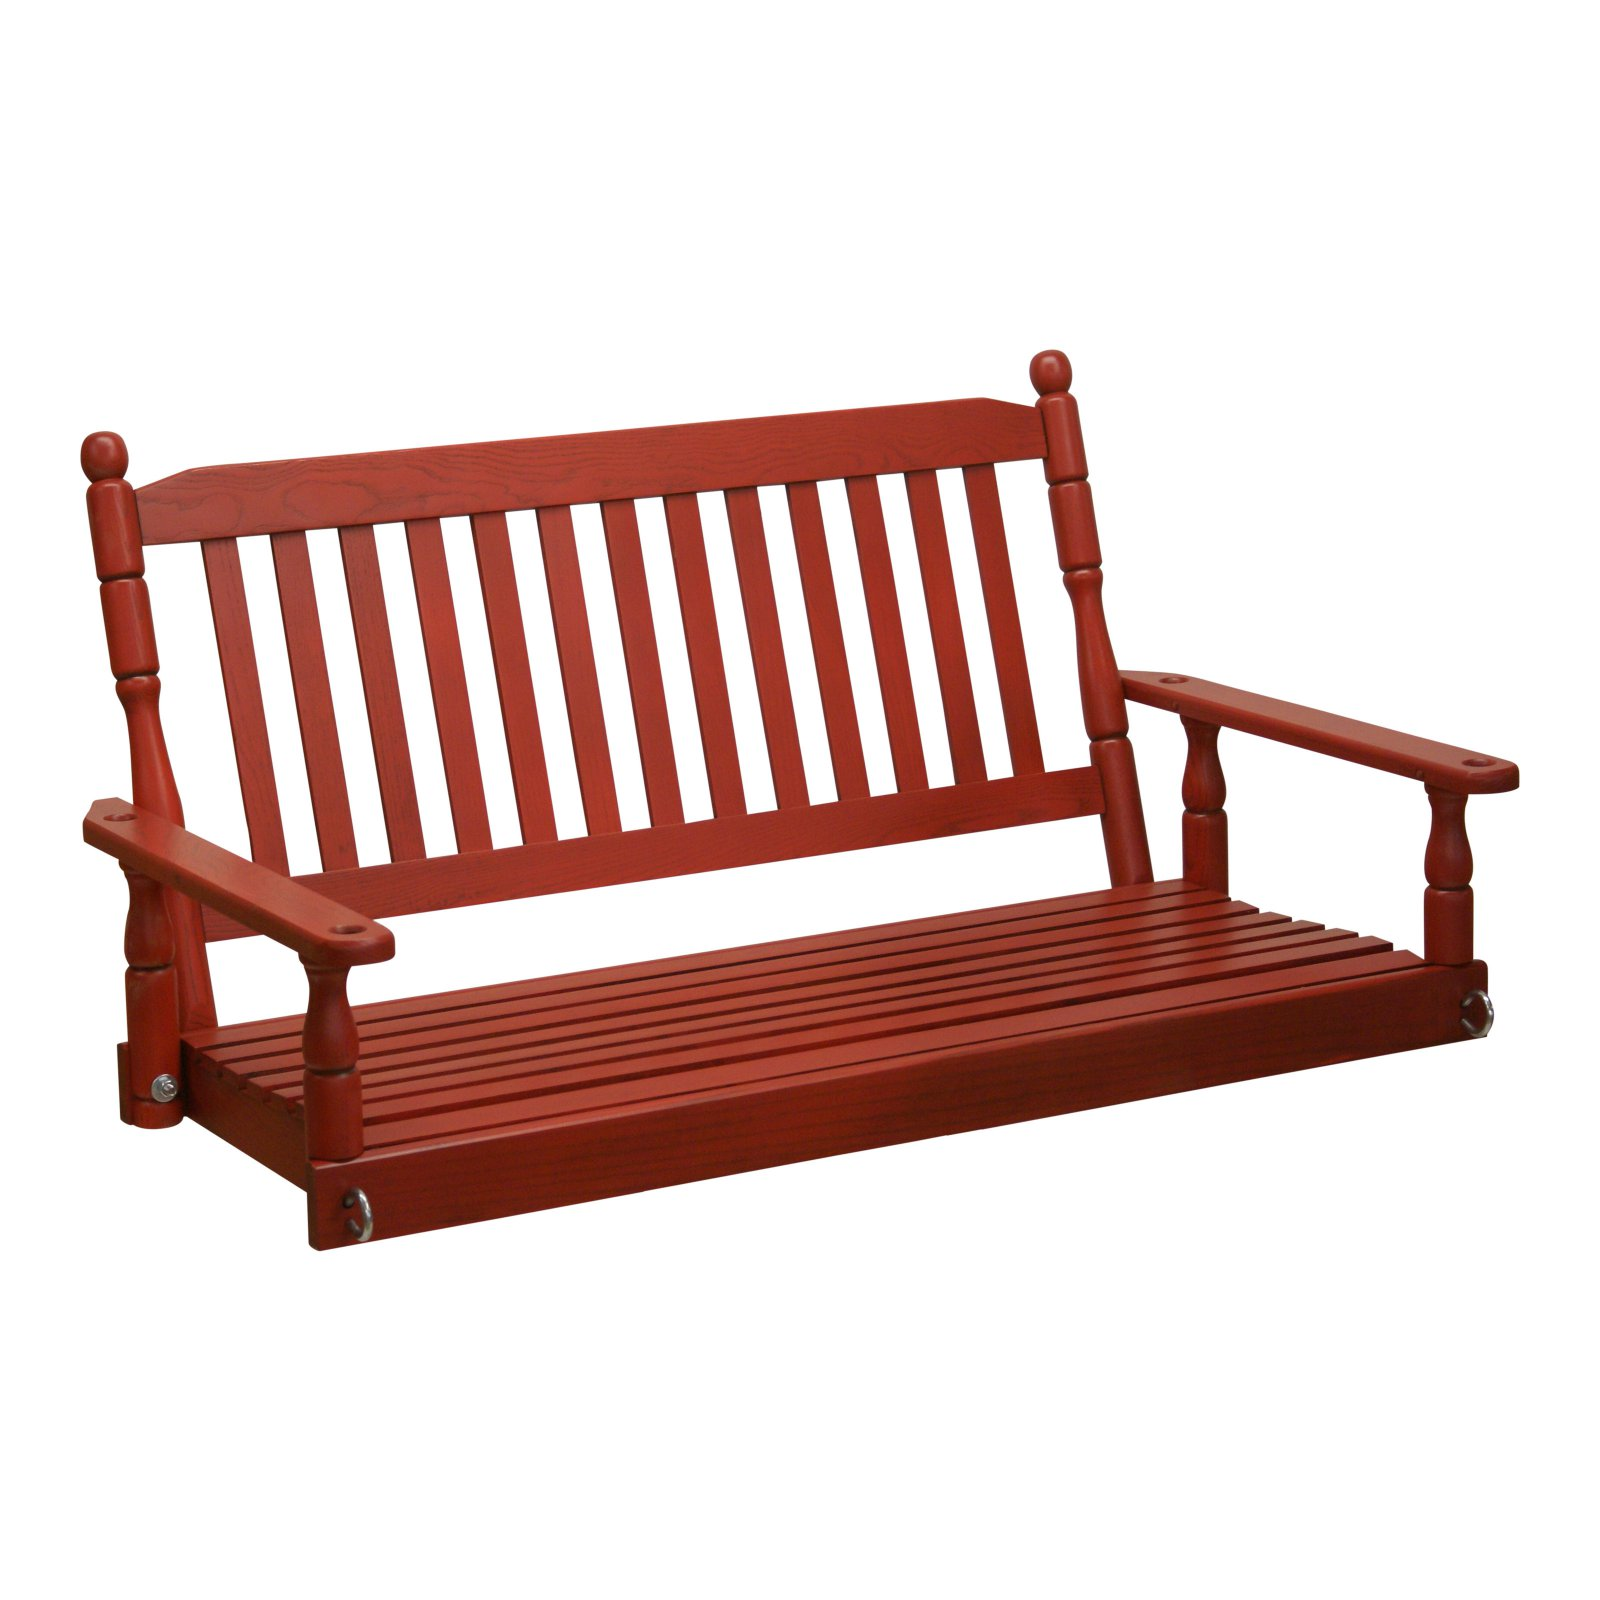 Hinkle Cumberland 250 Wood Patio Porch Swing